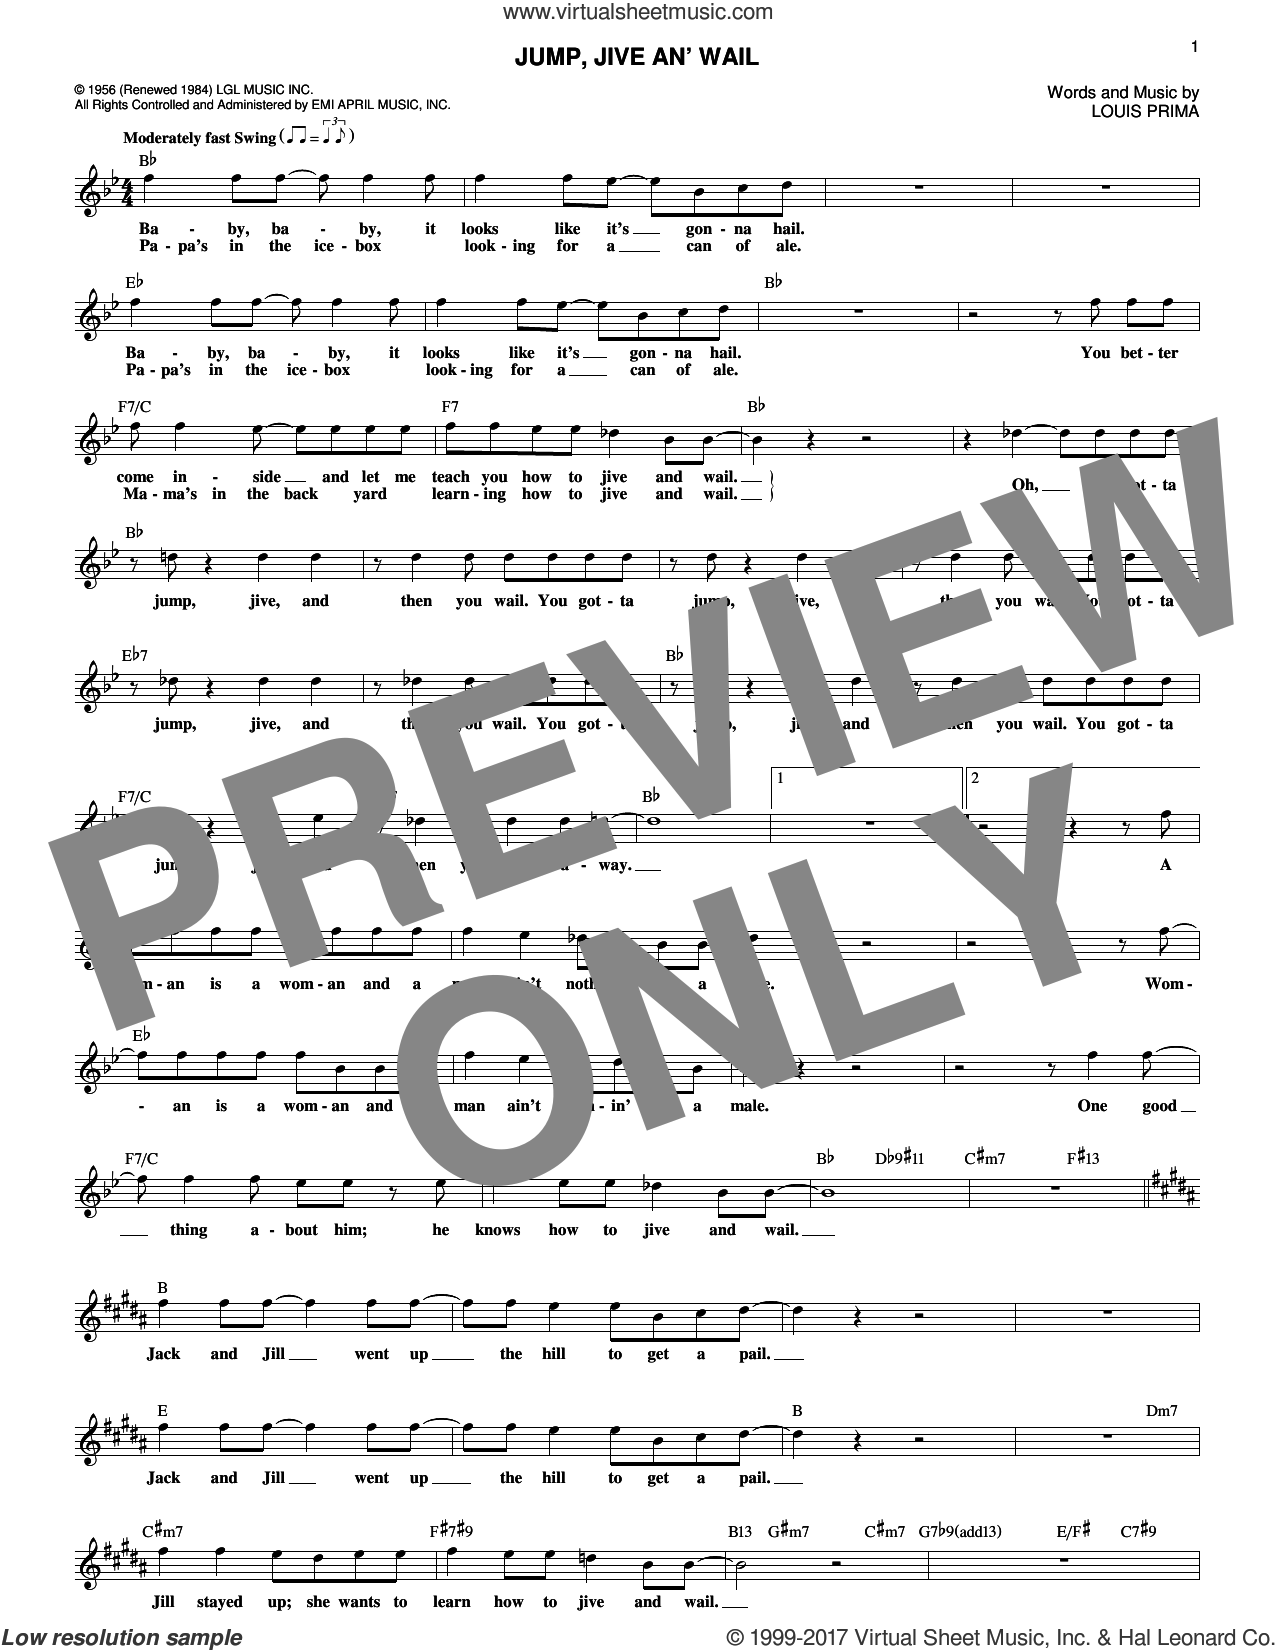 Jump, Jive An' Wail sheet music for voice and other instruments (fake book) by Louis Prima and Brian Setzer, intermediate